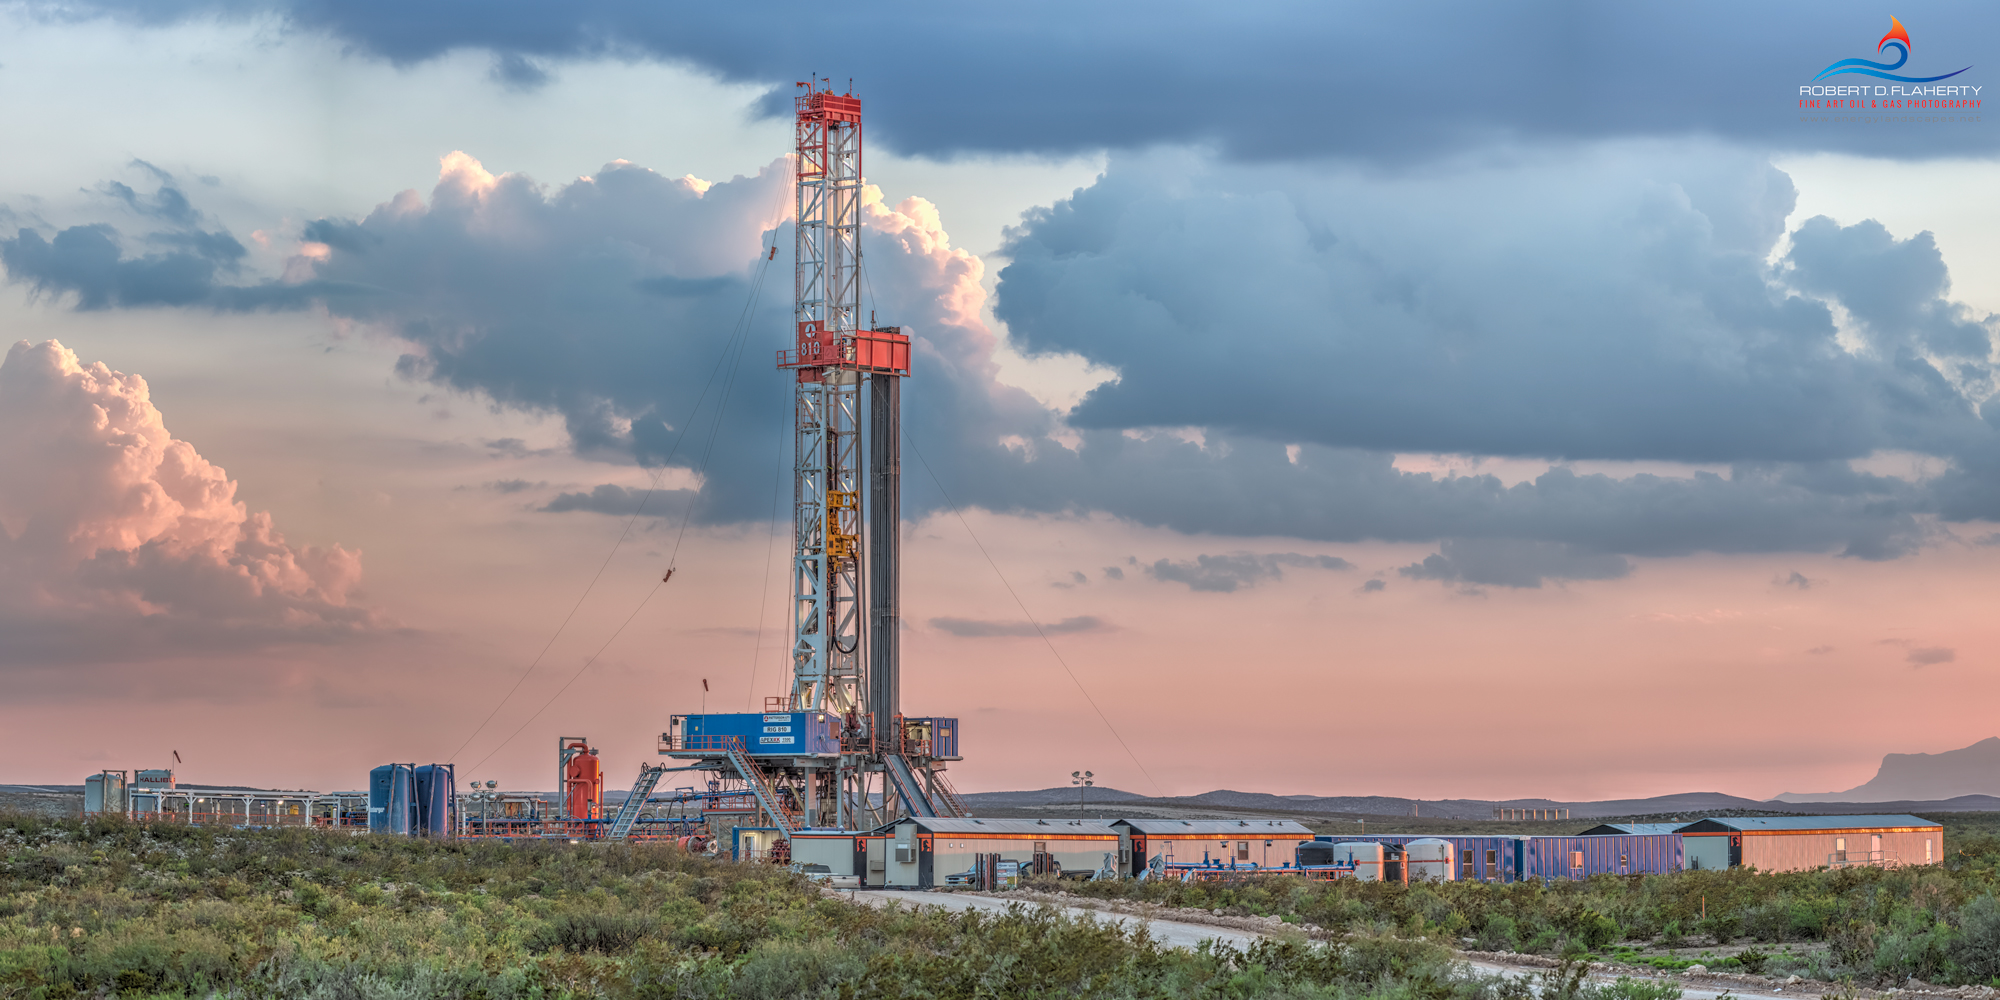 Patterson Drilling, Patterson rig 810, New Mexico, Permian Basin, Delaware Basin, directional well, drilling rig, Fall, monsoon, Guadalupe Pass, high resolution, photo